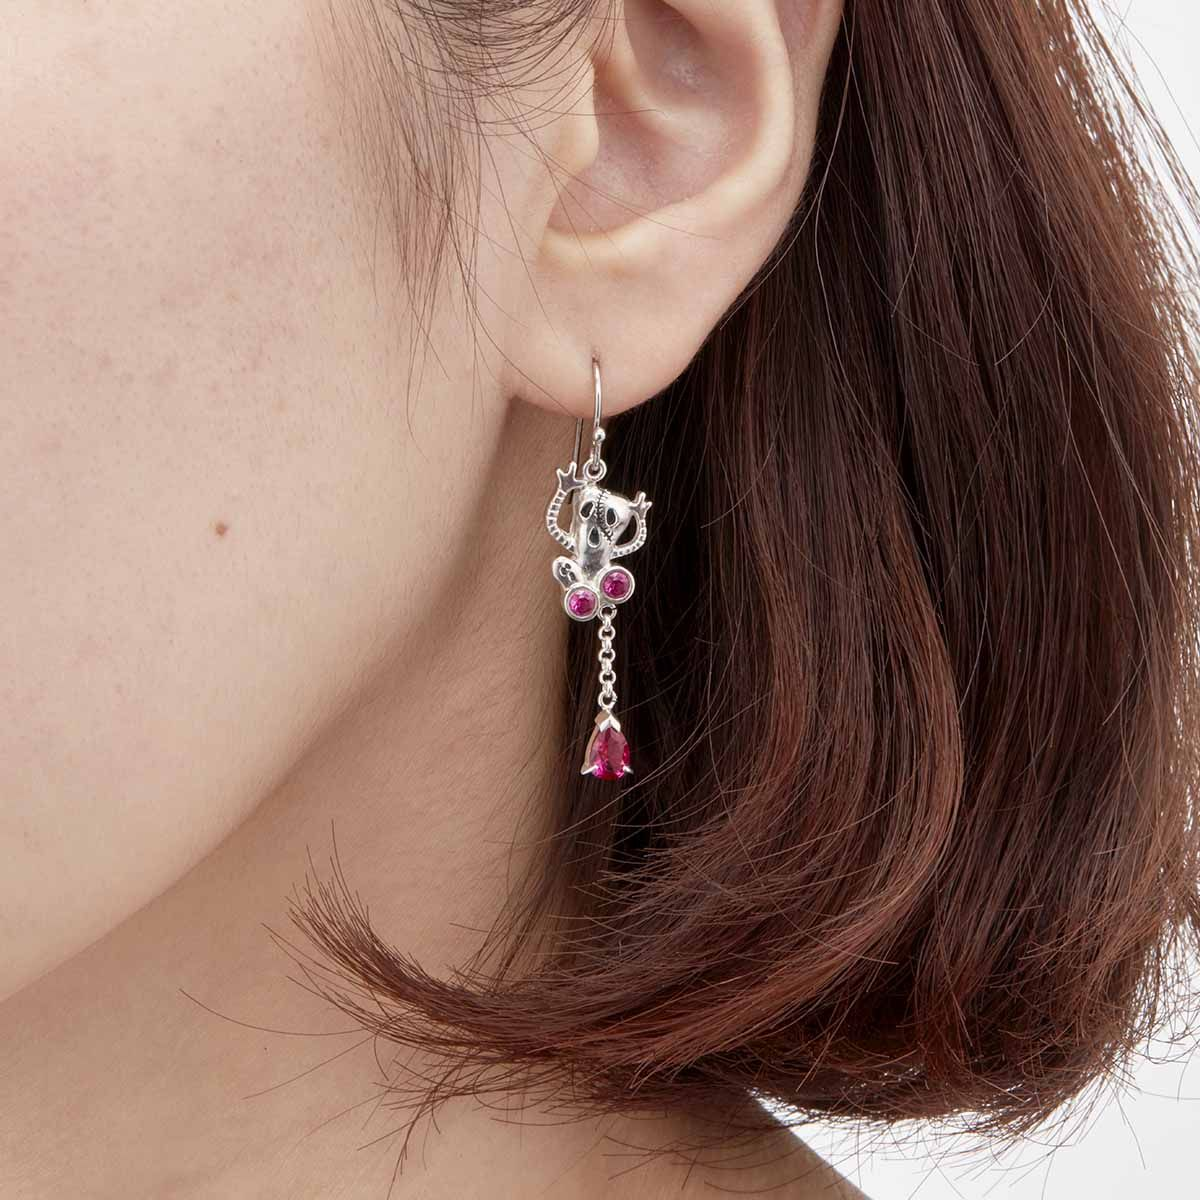 Risotto Earrings —JoJo's Bizarre Adventure: Golden Wind